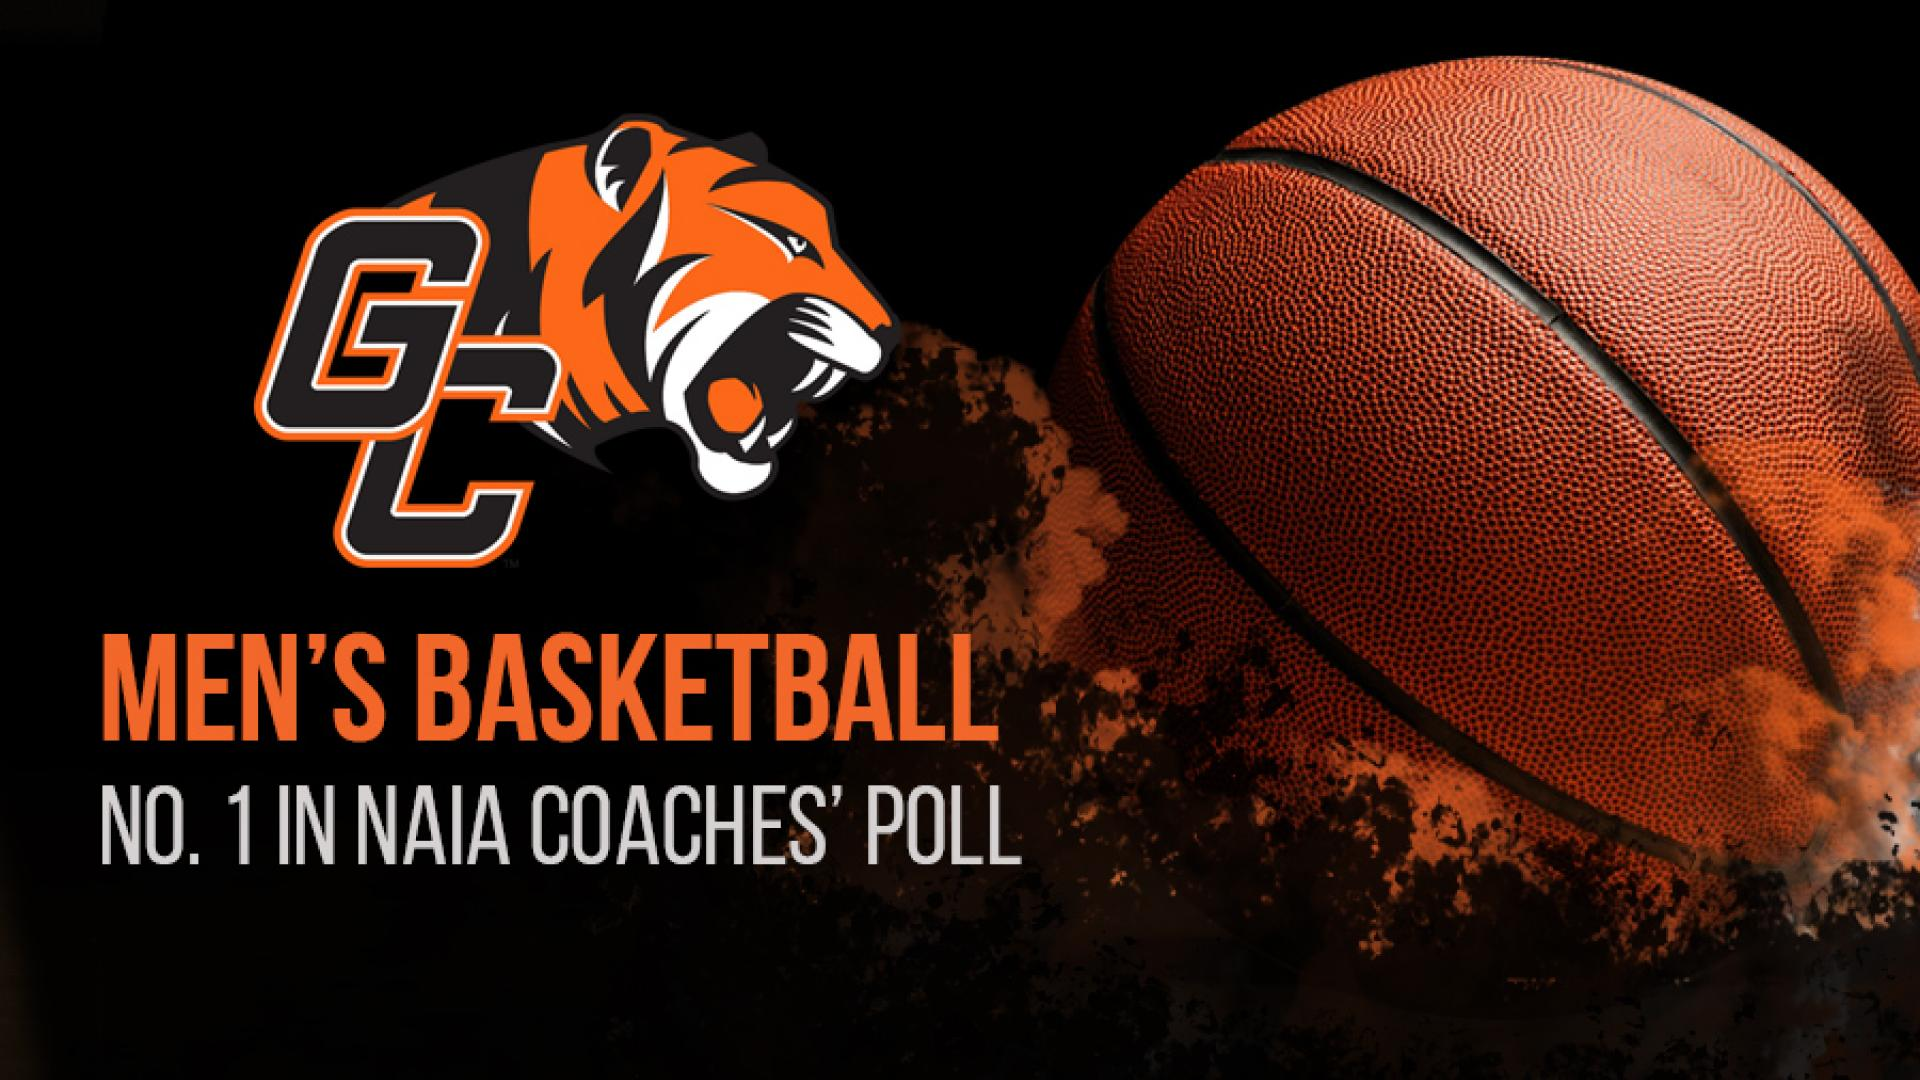 Men's basketball No. 1 in NAIA Coaches' Poll